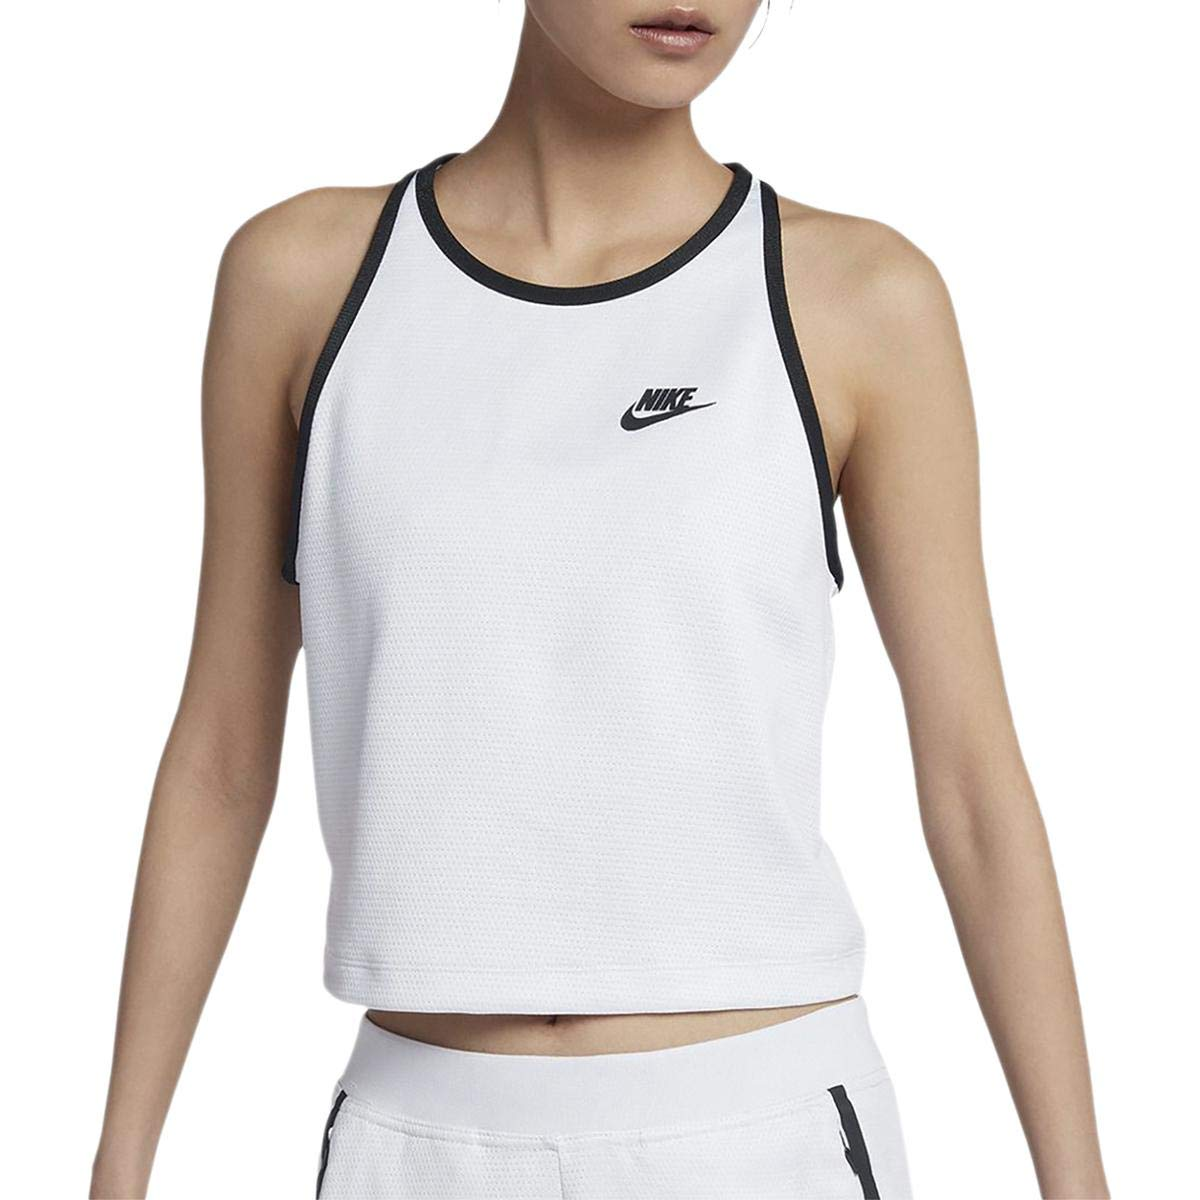 Nike Womens Yoga Fitness Tank Top White L at Amazon Womens ...